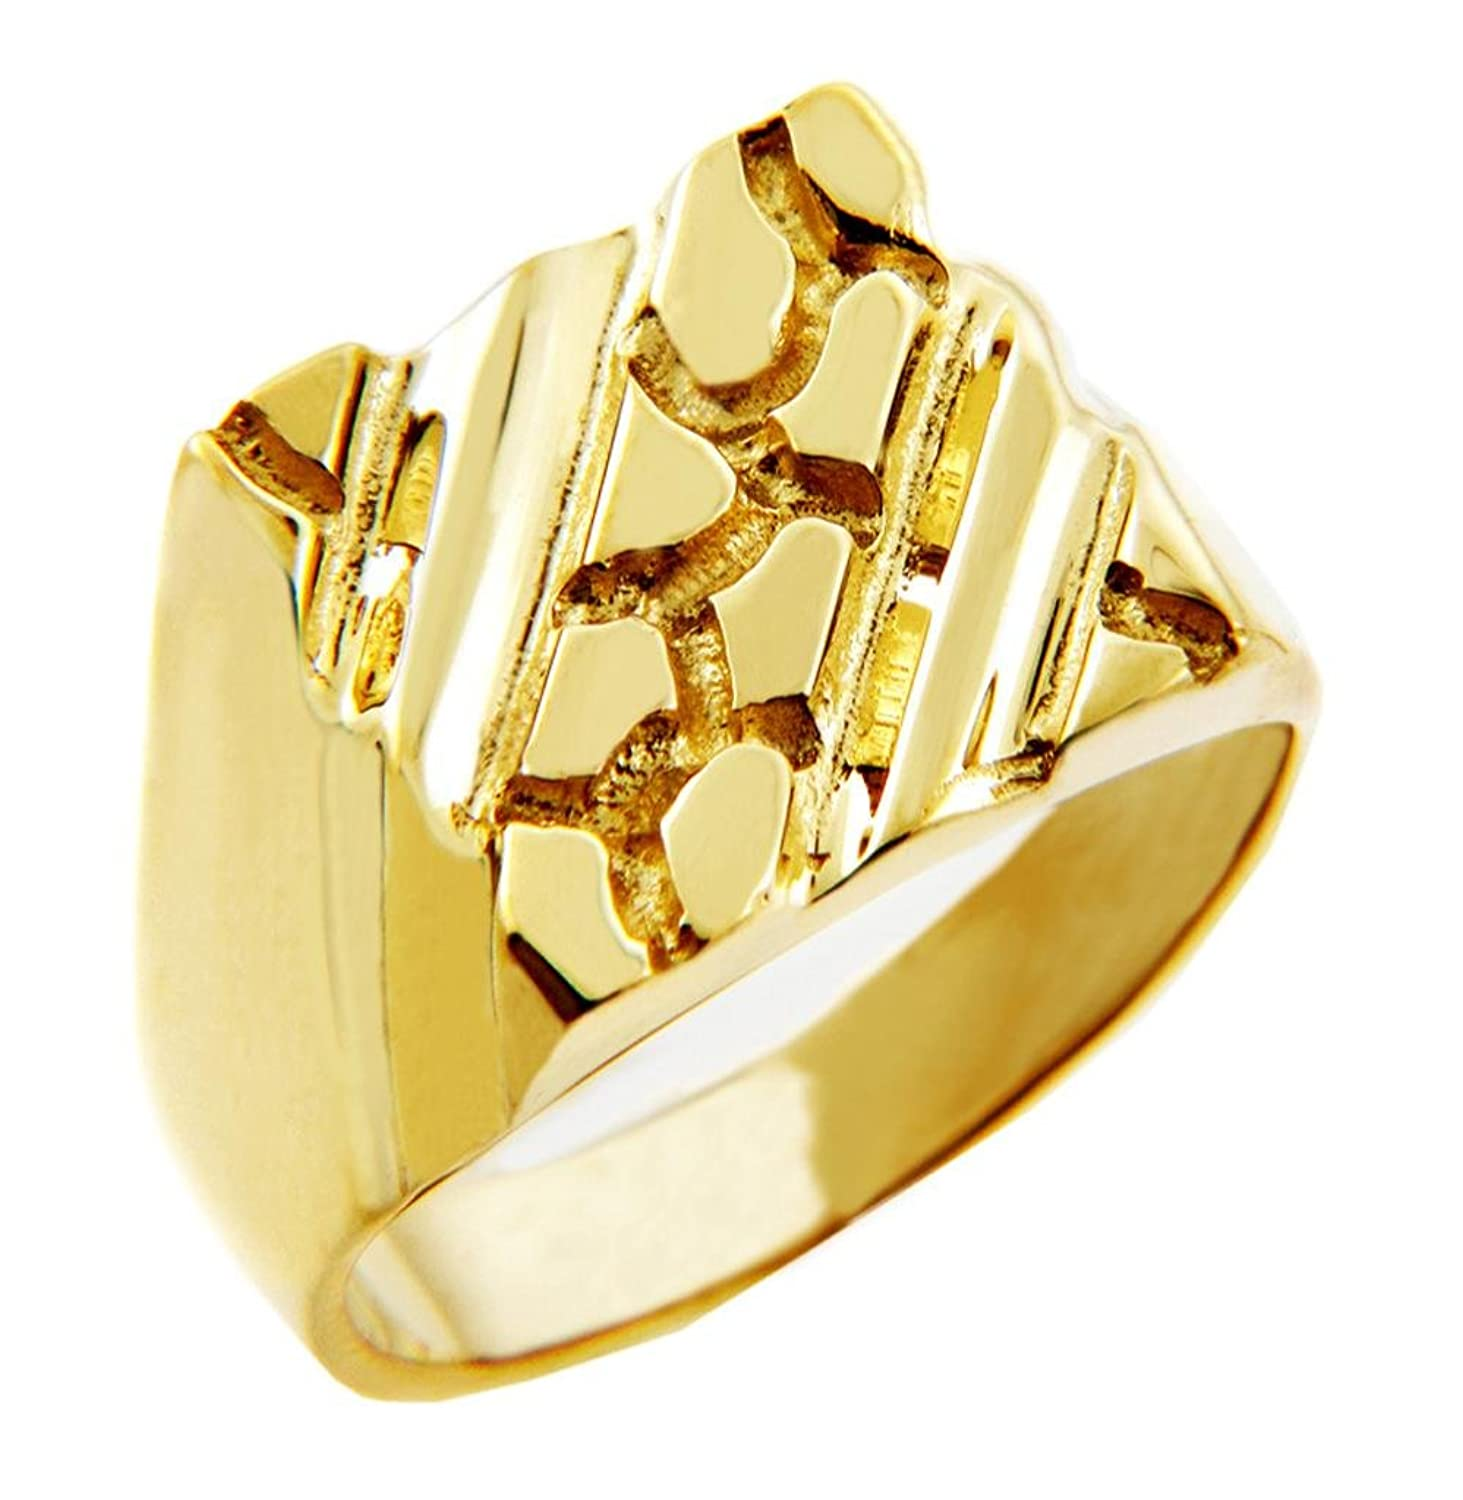 of com fresh gold is alternative an luxury invisible weddings jewelry setting rings engagement what